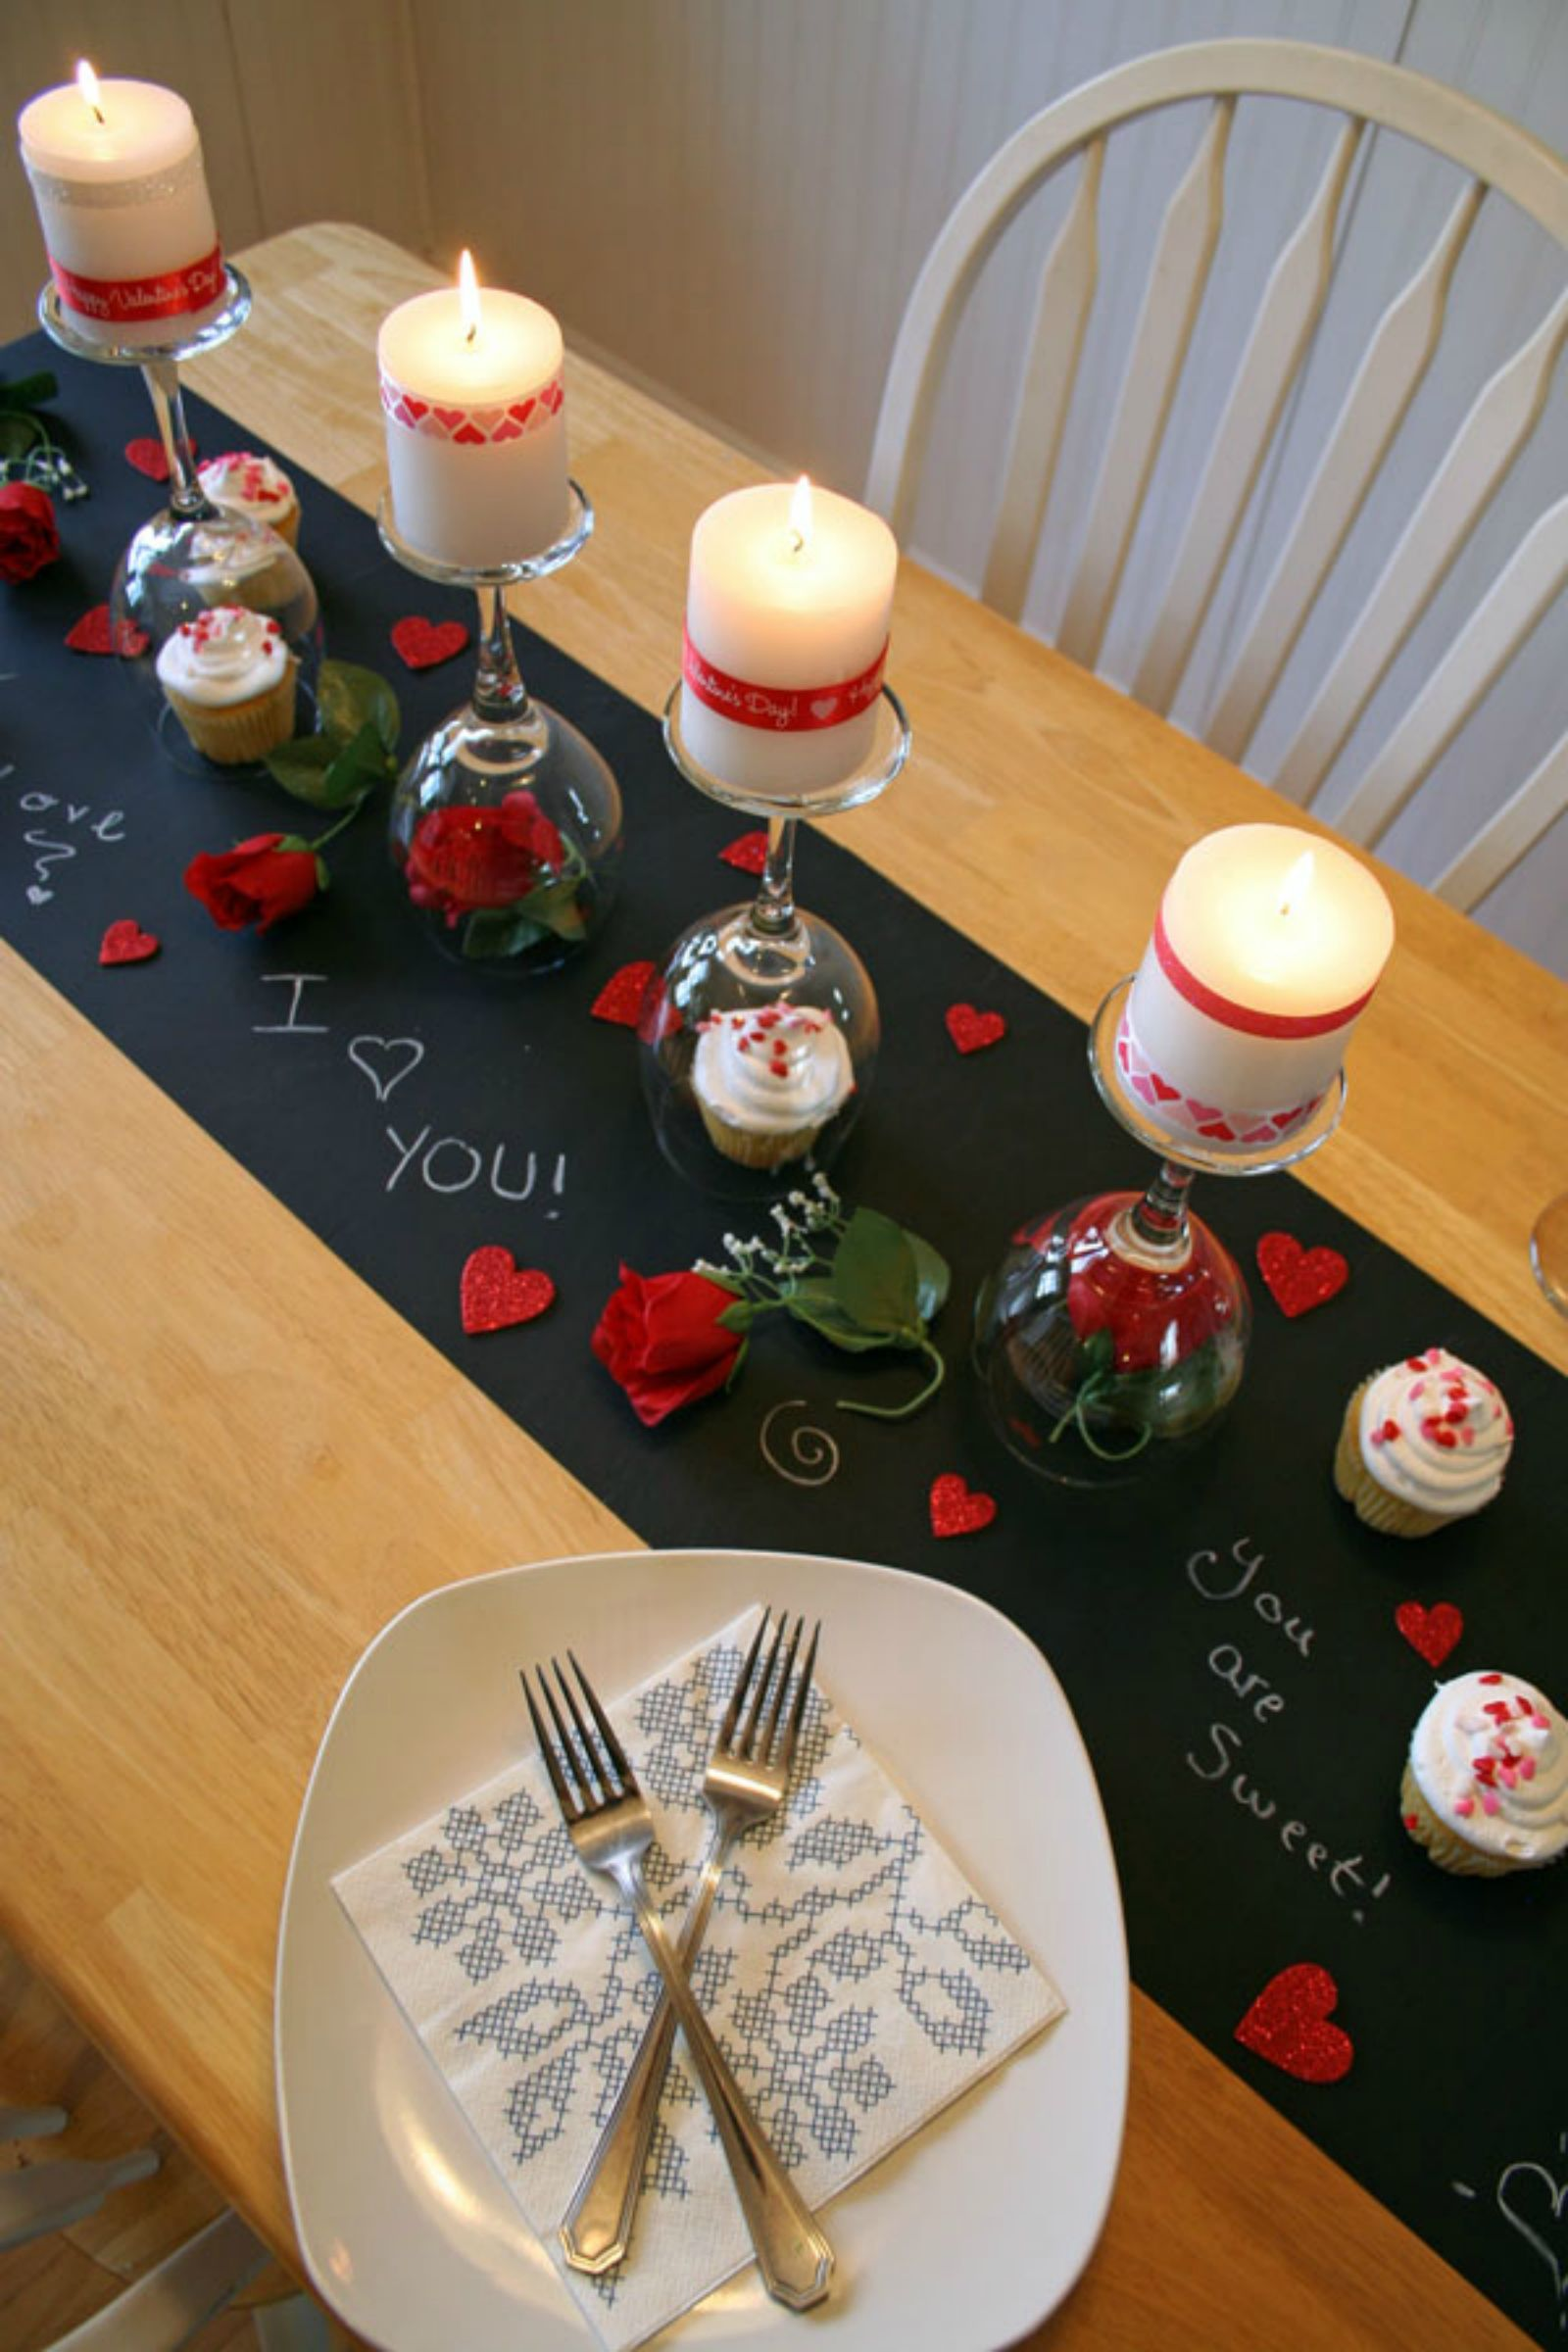 Valentines Day Dinner Table Centerpieces Valentineu0027s Day Decoration Ideas - Valentineu0027s Day DIY Dinner Tablescape